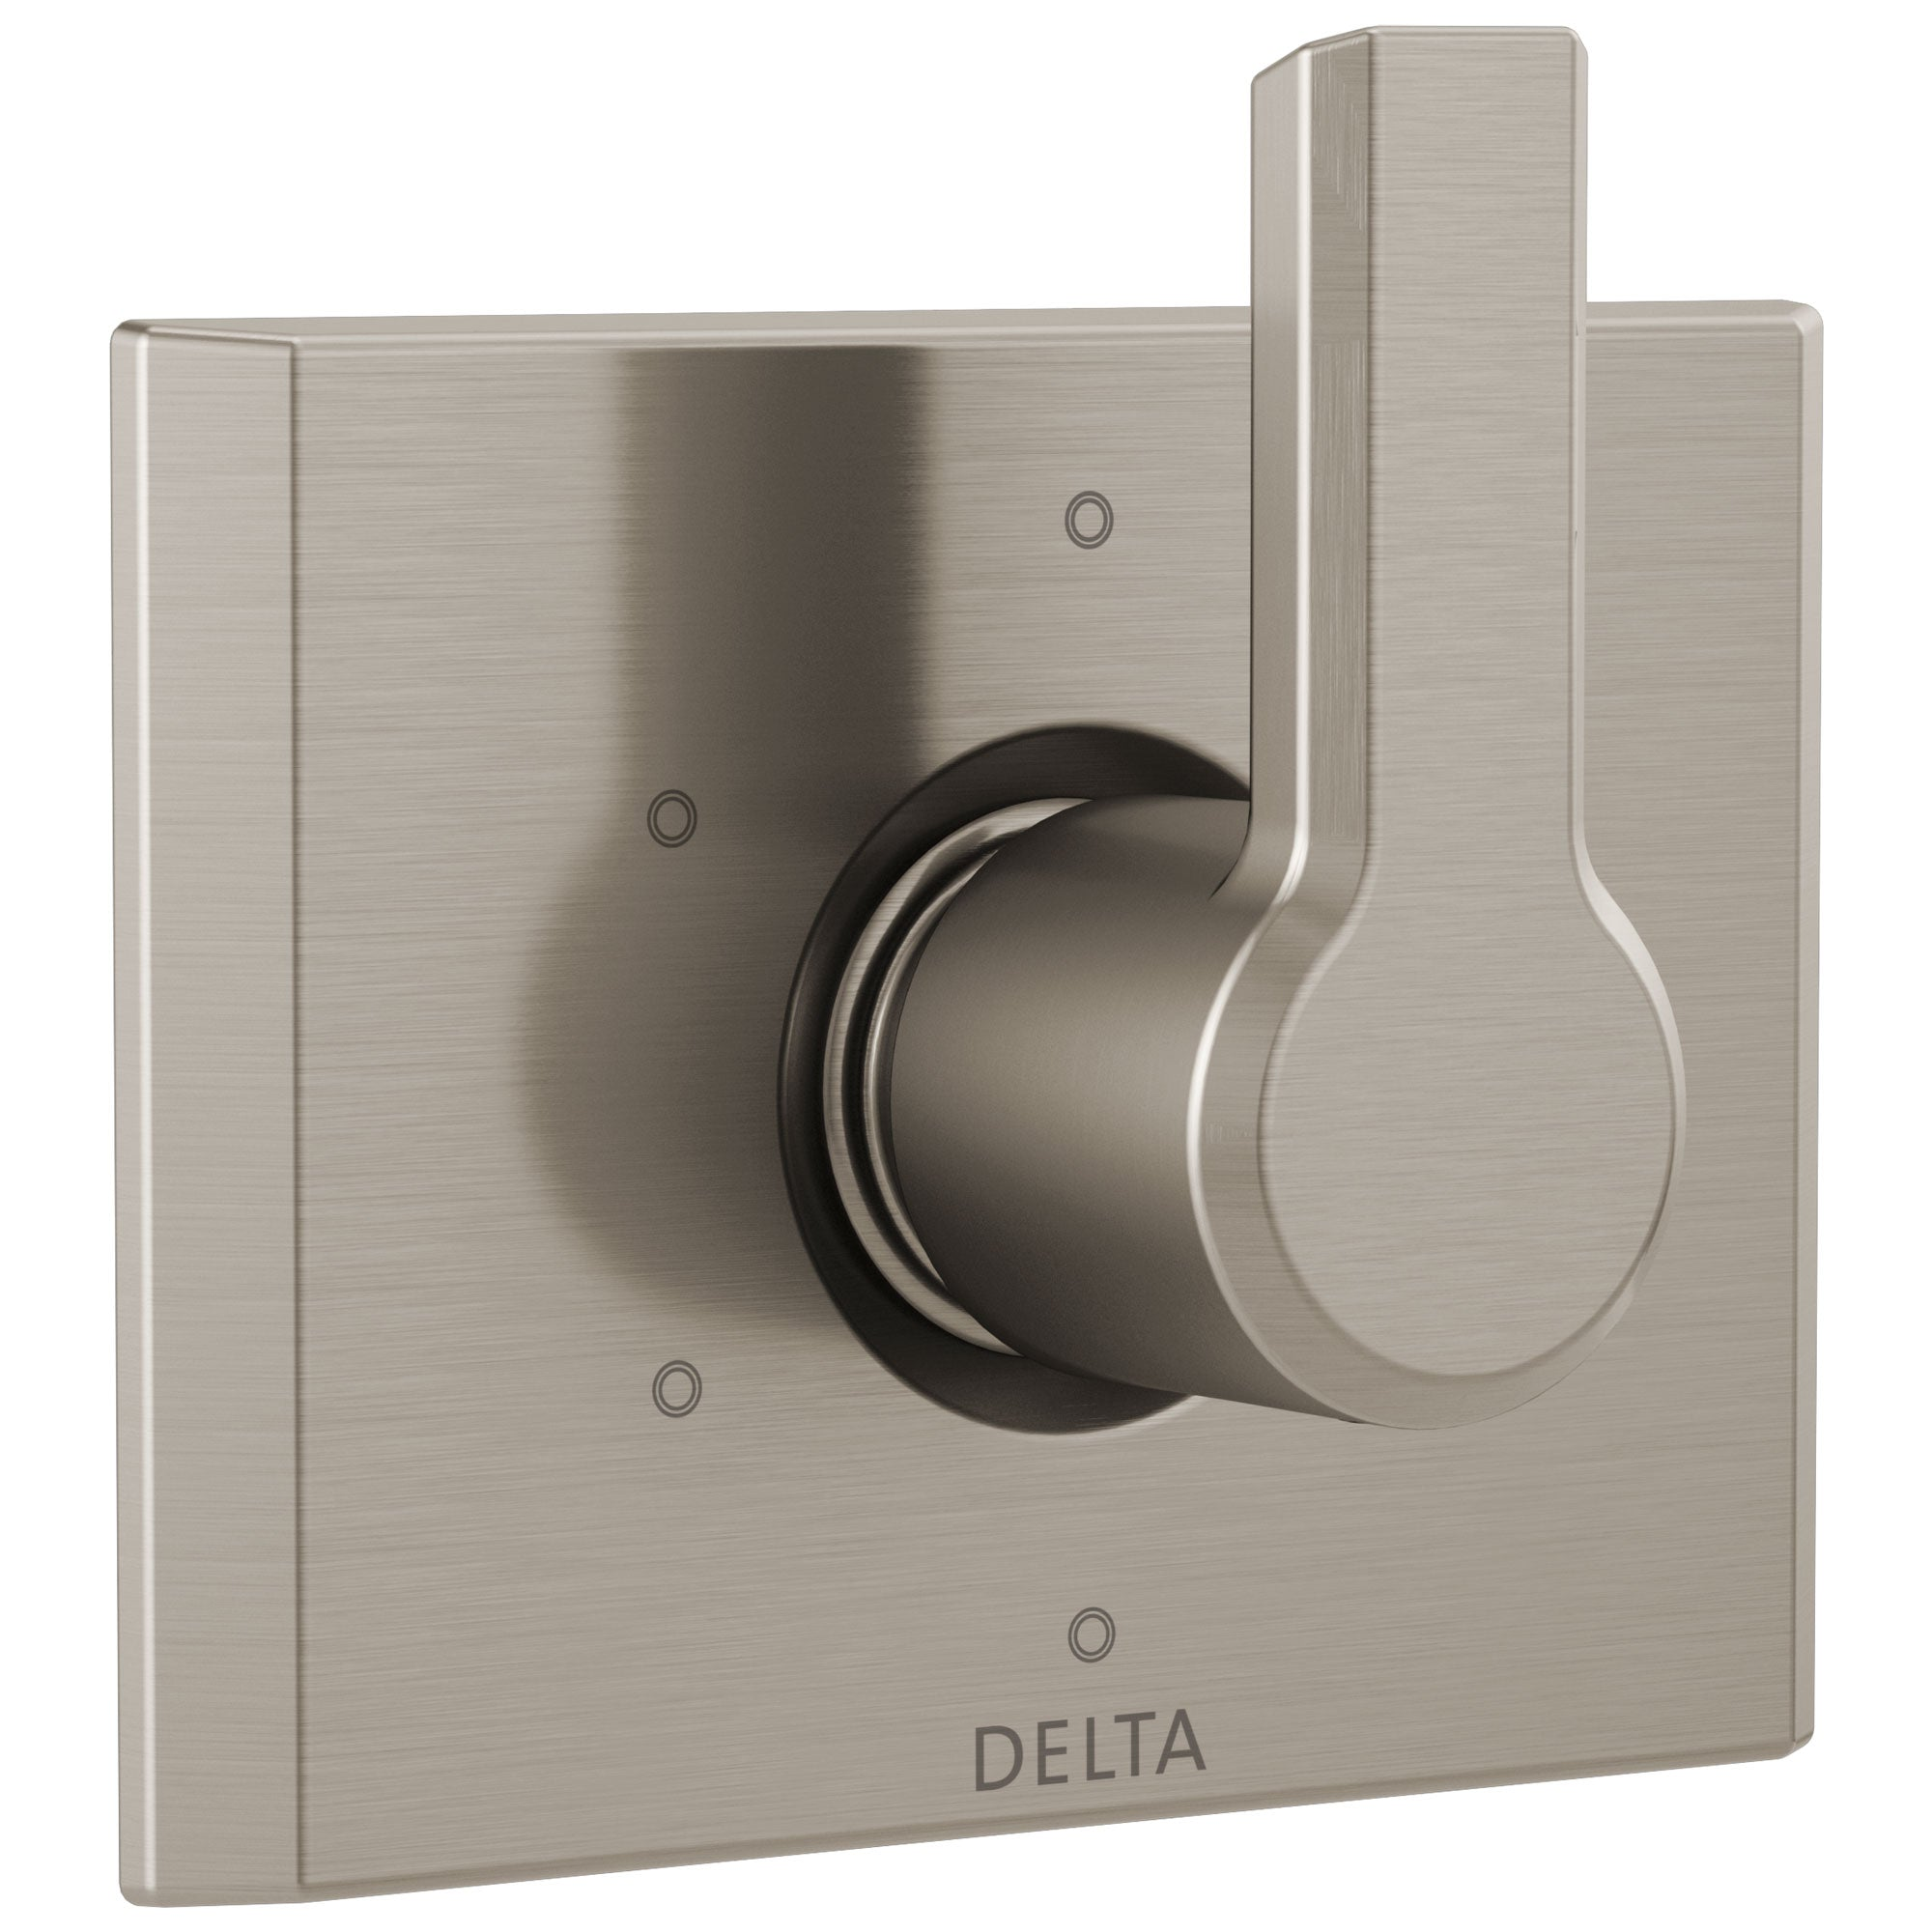 Delta Pivotal Stainless Steel Finish 6-Setting 3-Port Shower Diverter Trim Kit (Requires Valve) DT11999SS